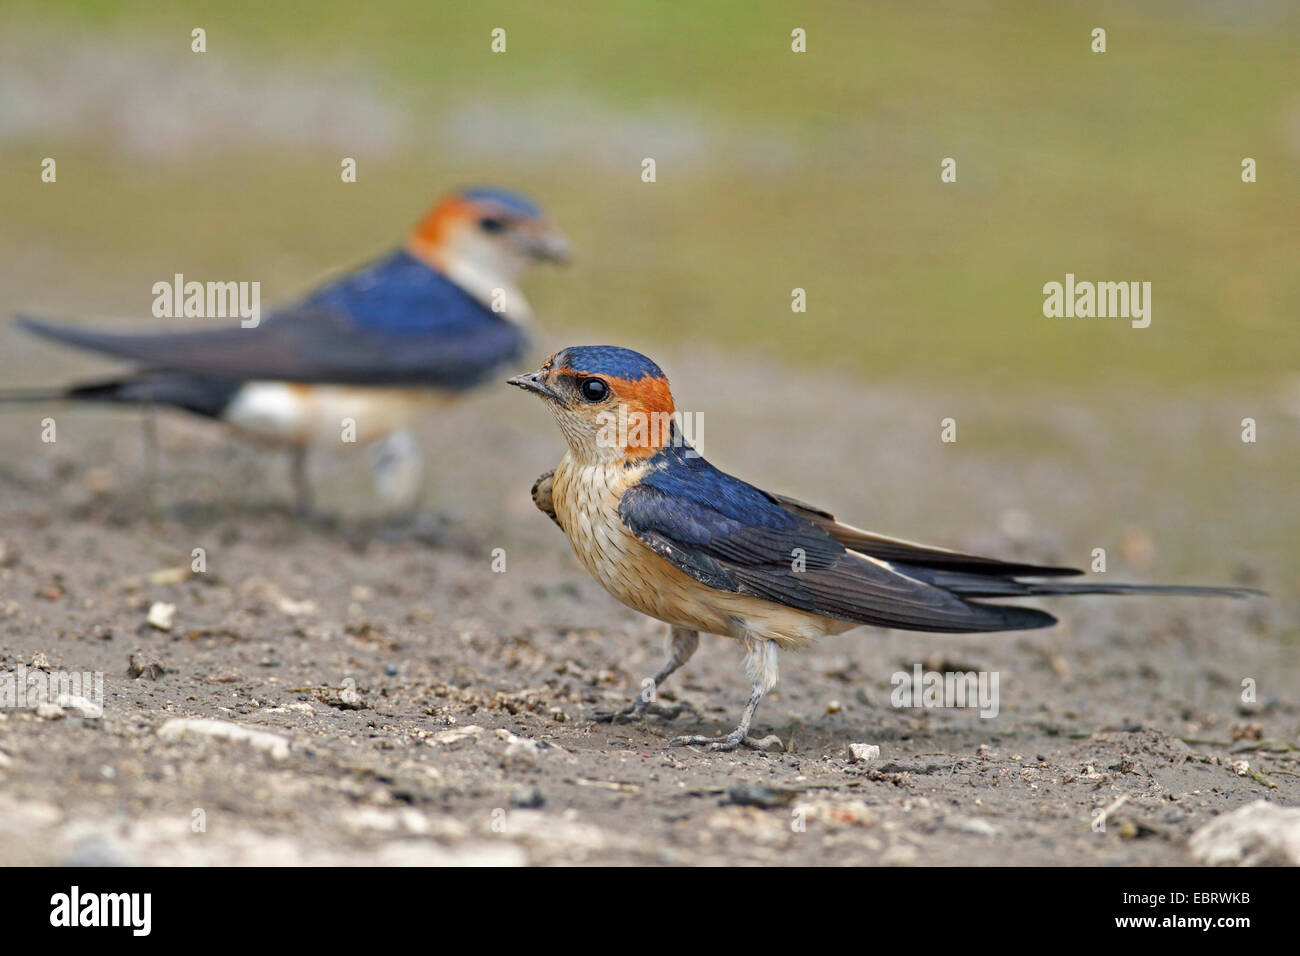 red-rumped swallow (Hirundo daurica), collects nesting material at a waterhole, Bulgaria - Stock Image